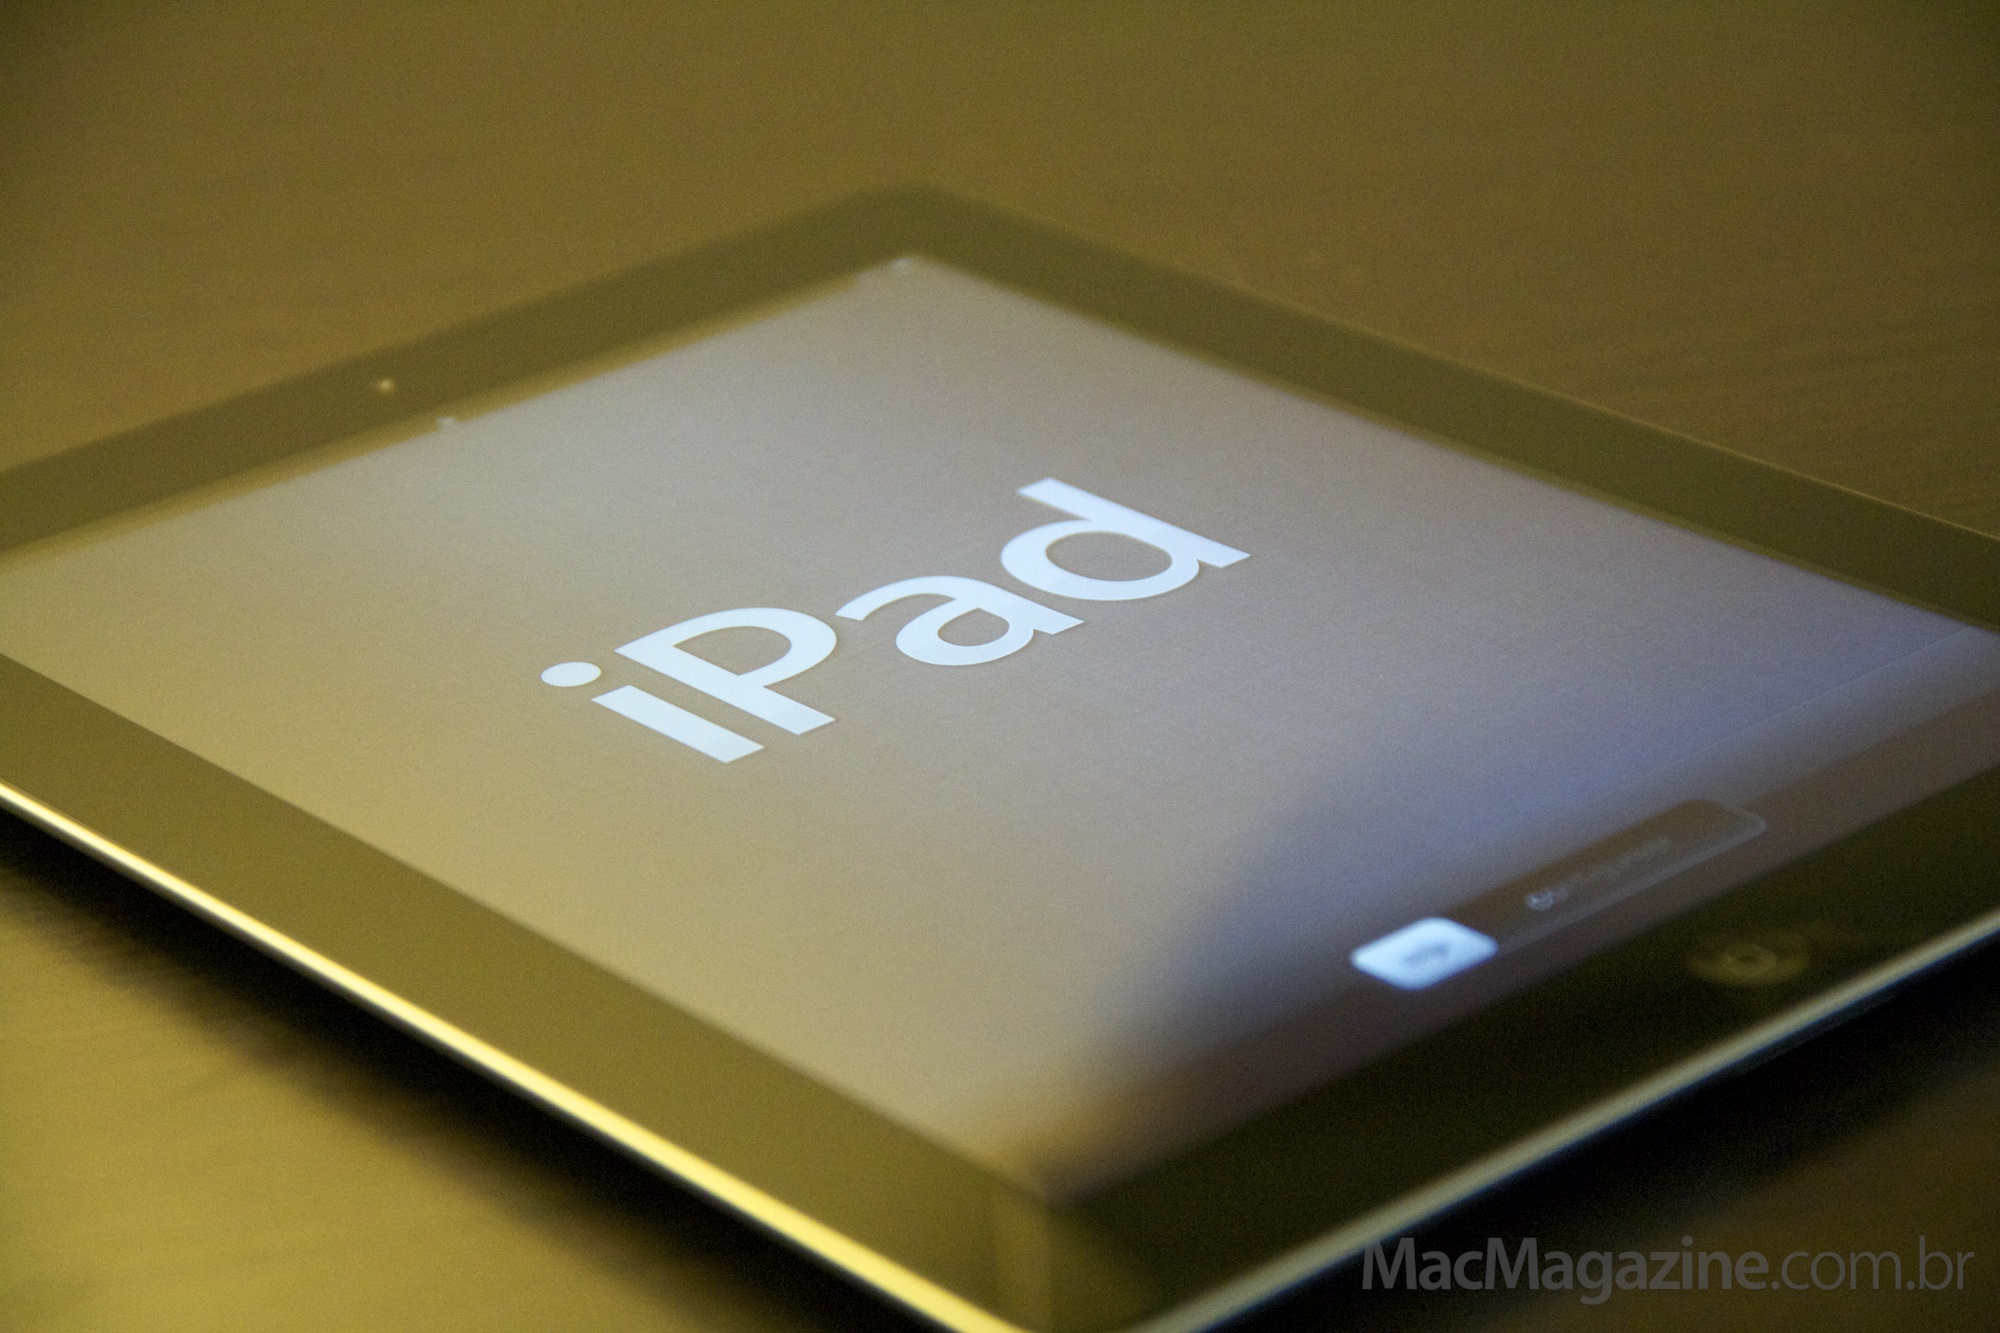 Unboxing do novo iPad